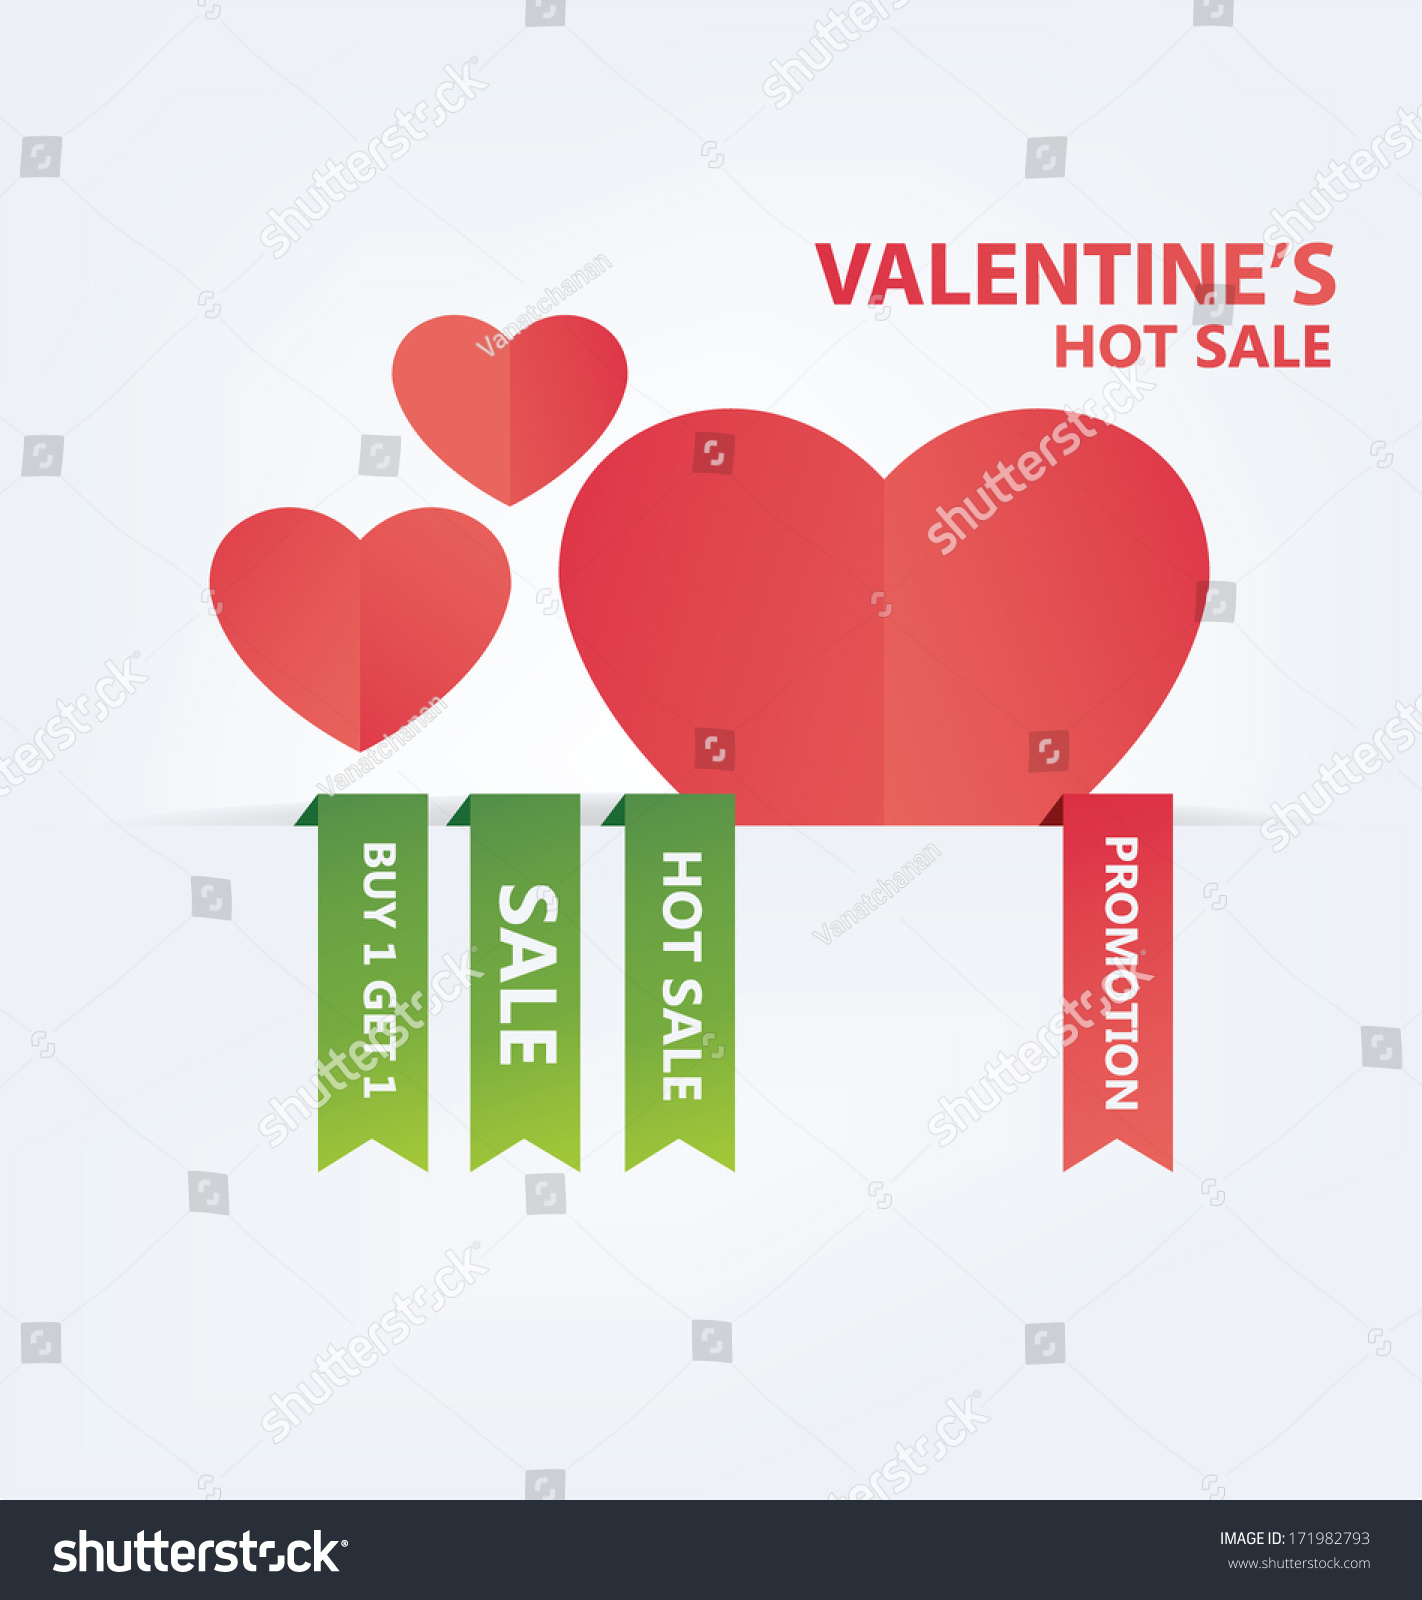 ecfe2e3096 Valentines Day Hot Sale Illustration Stock Vector (Royalty Free ...